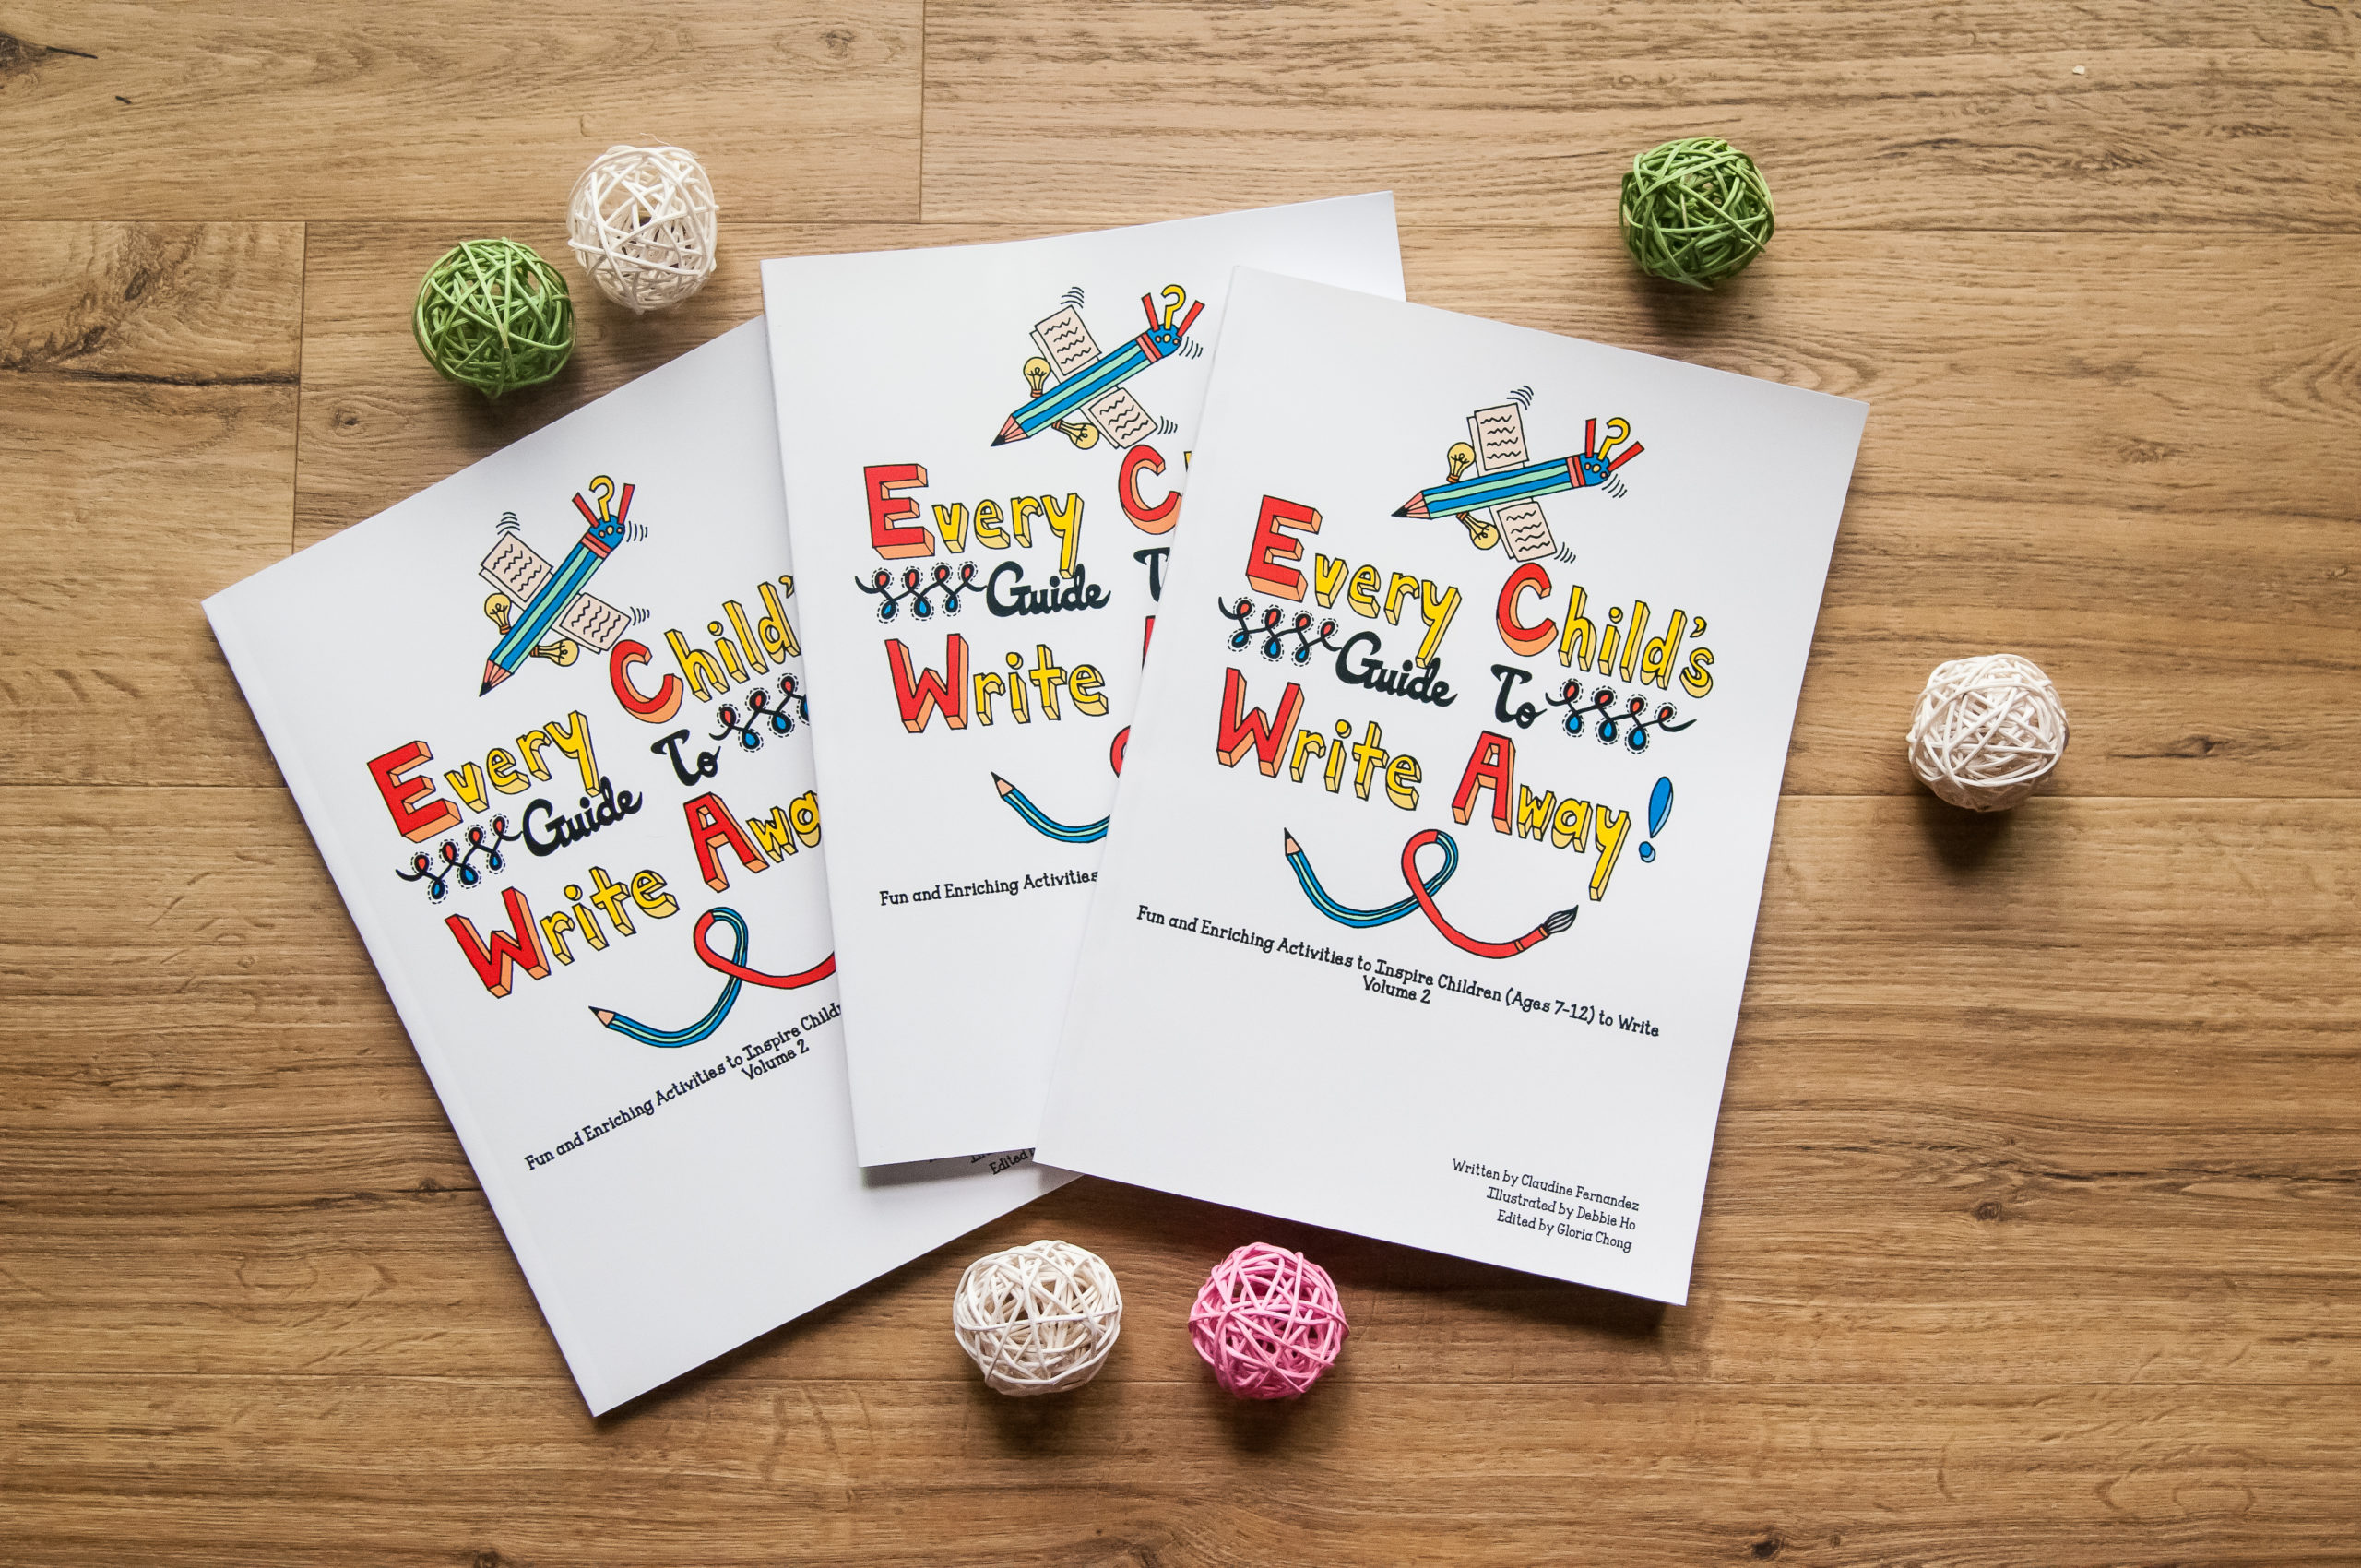 Every Child's Guide to Write Away! Book